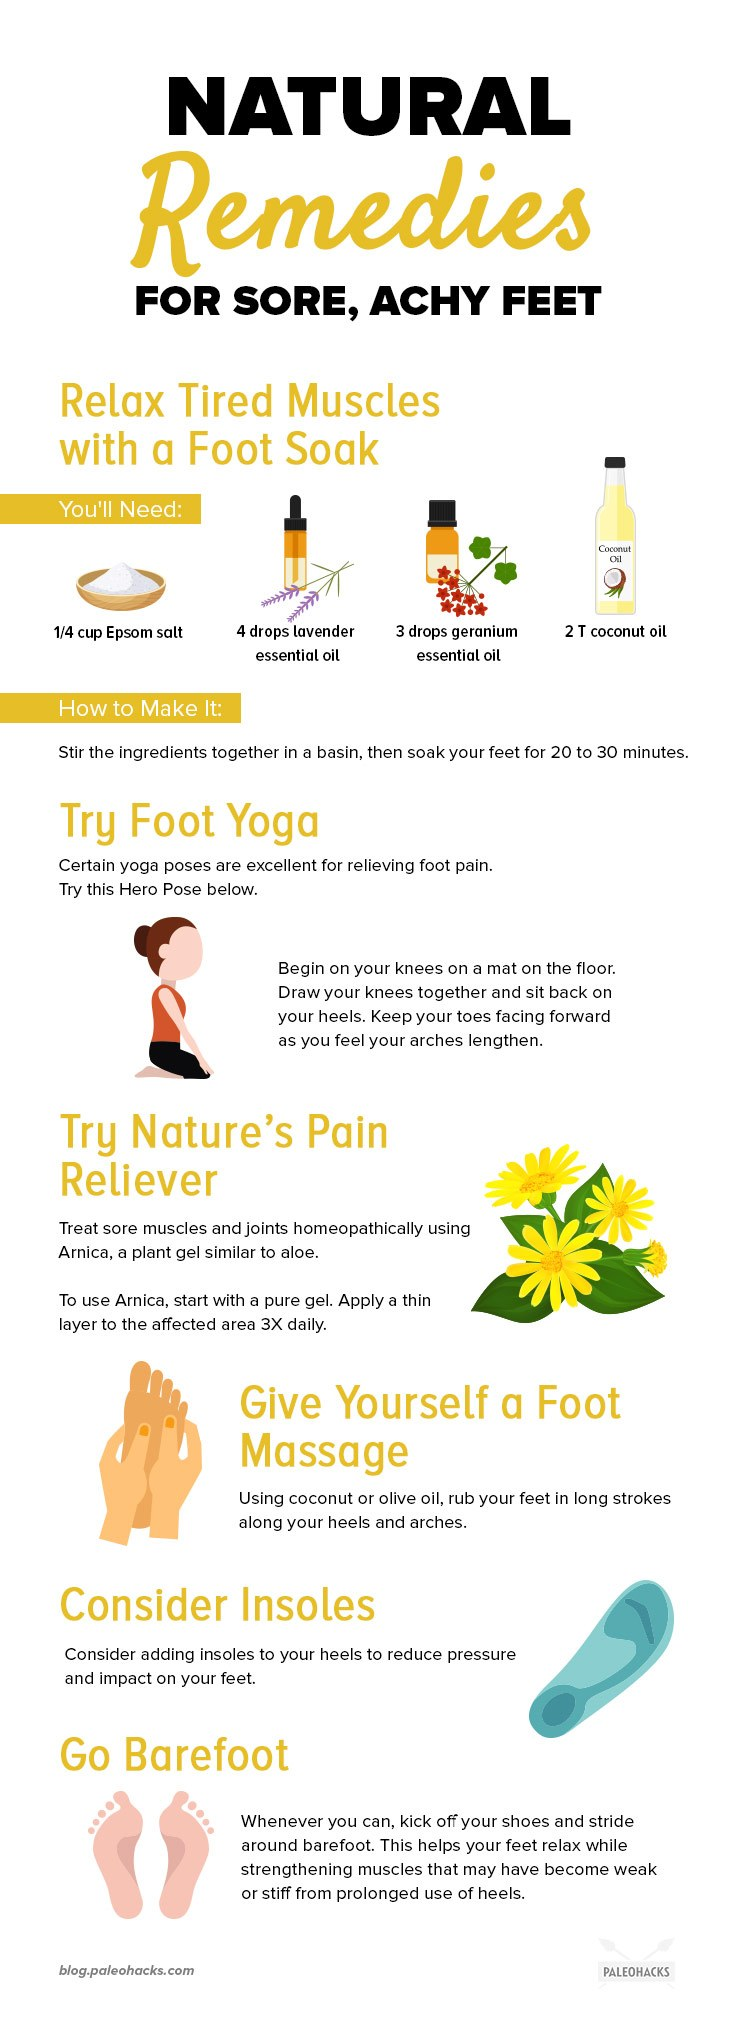 Natural-Remedies-For-Sore-Achy-Feet-infog.jpg